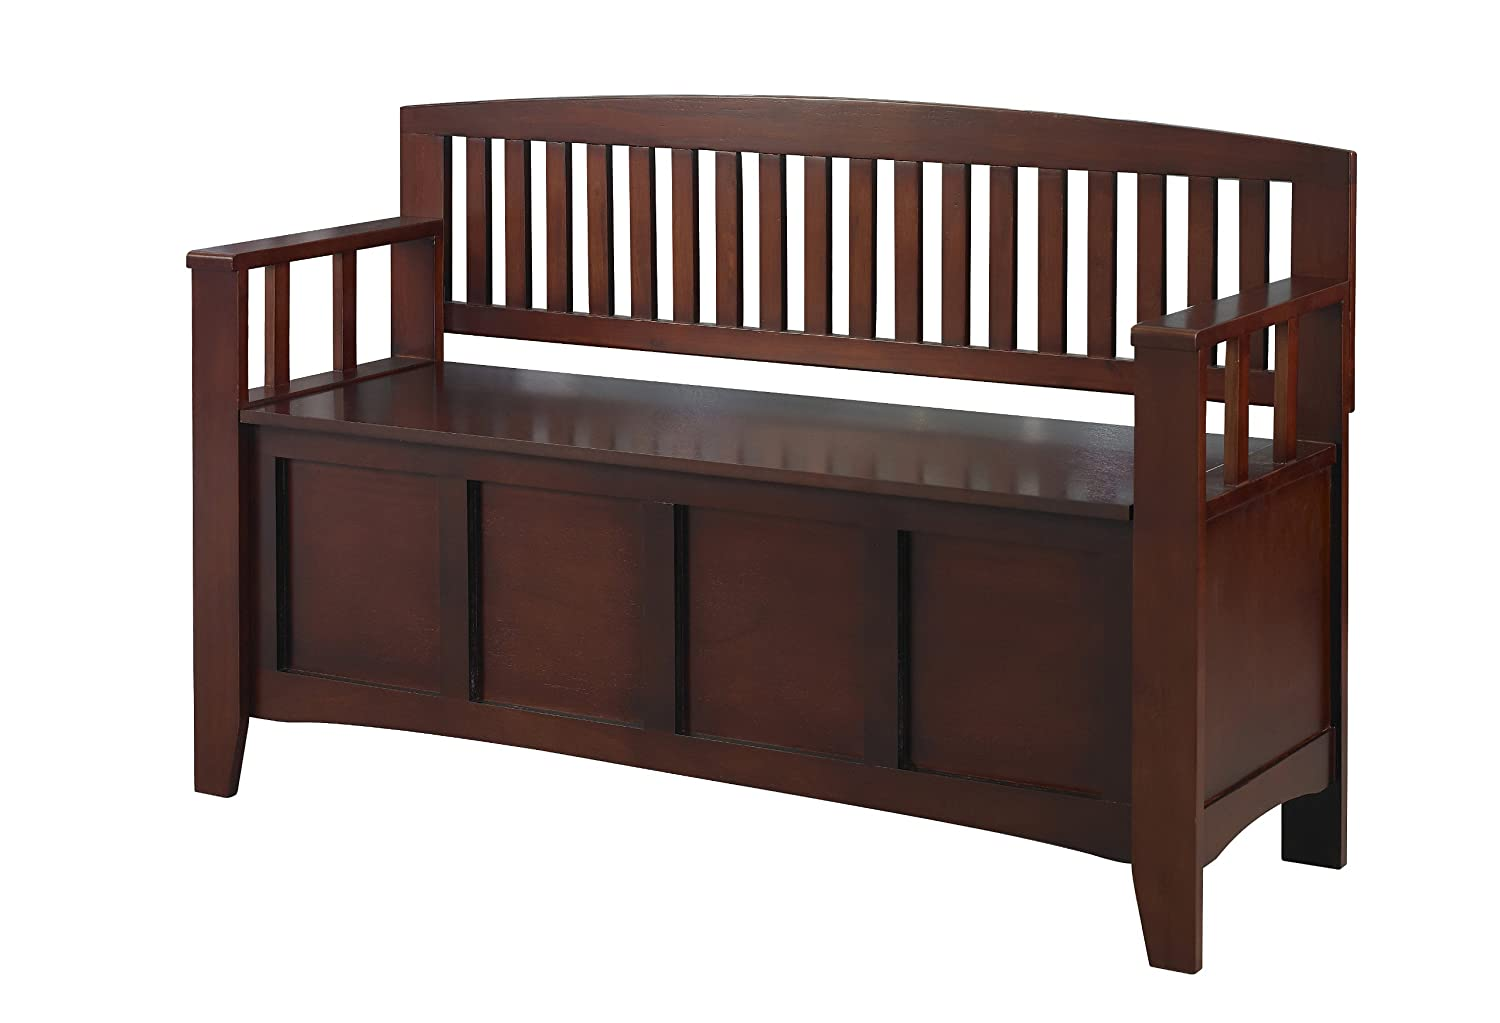 Bedroom Bench Storage Amazoncom Storage Benches Home Kitchen